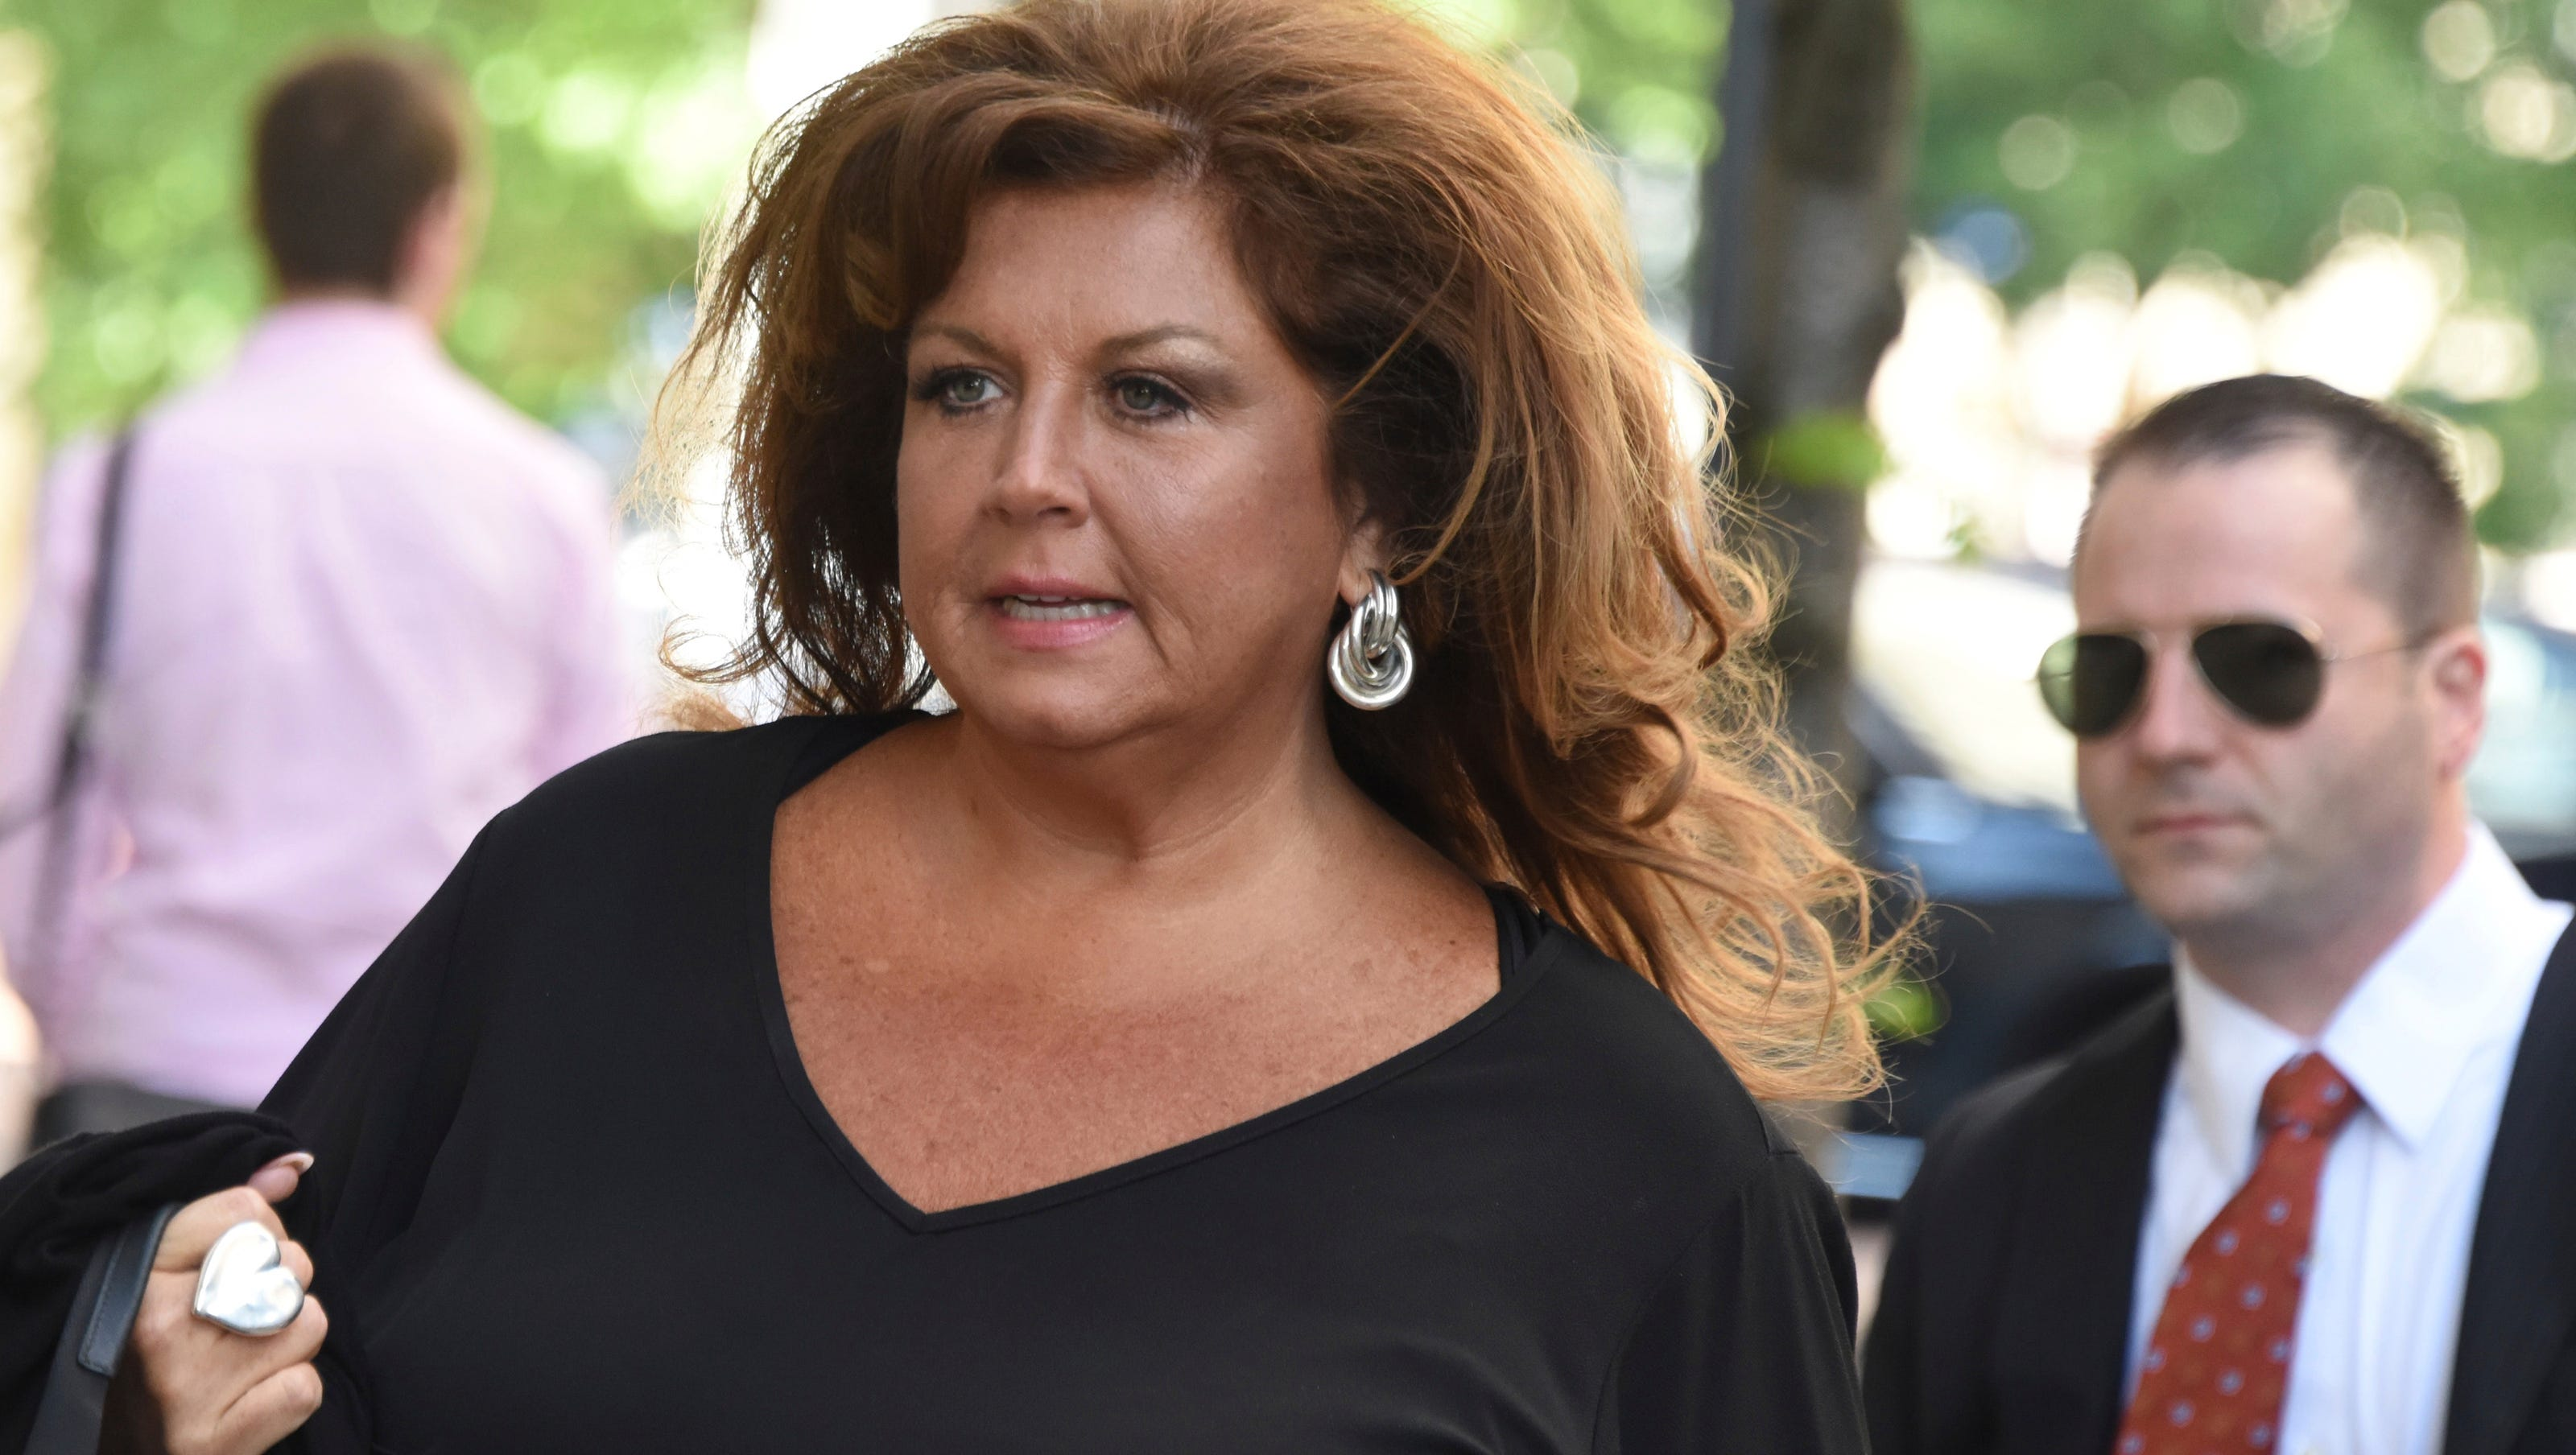 Dance Moms star Abby Lee Miller released from federal prison